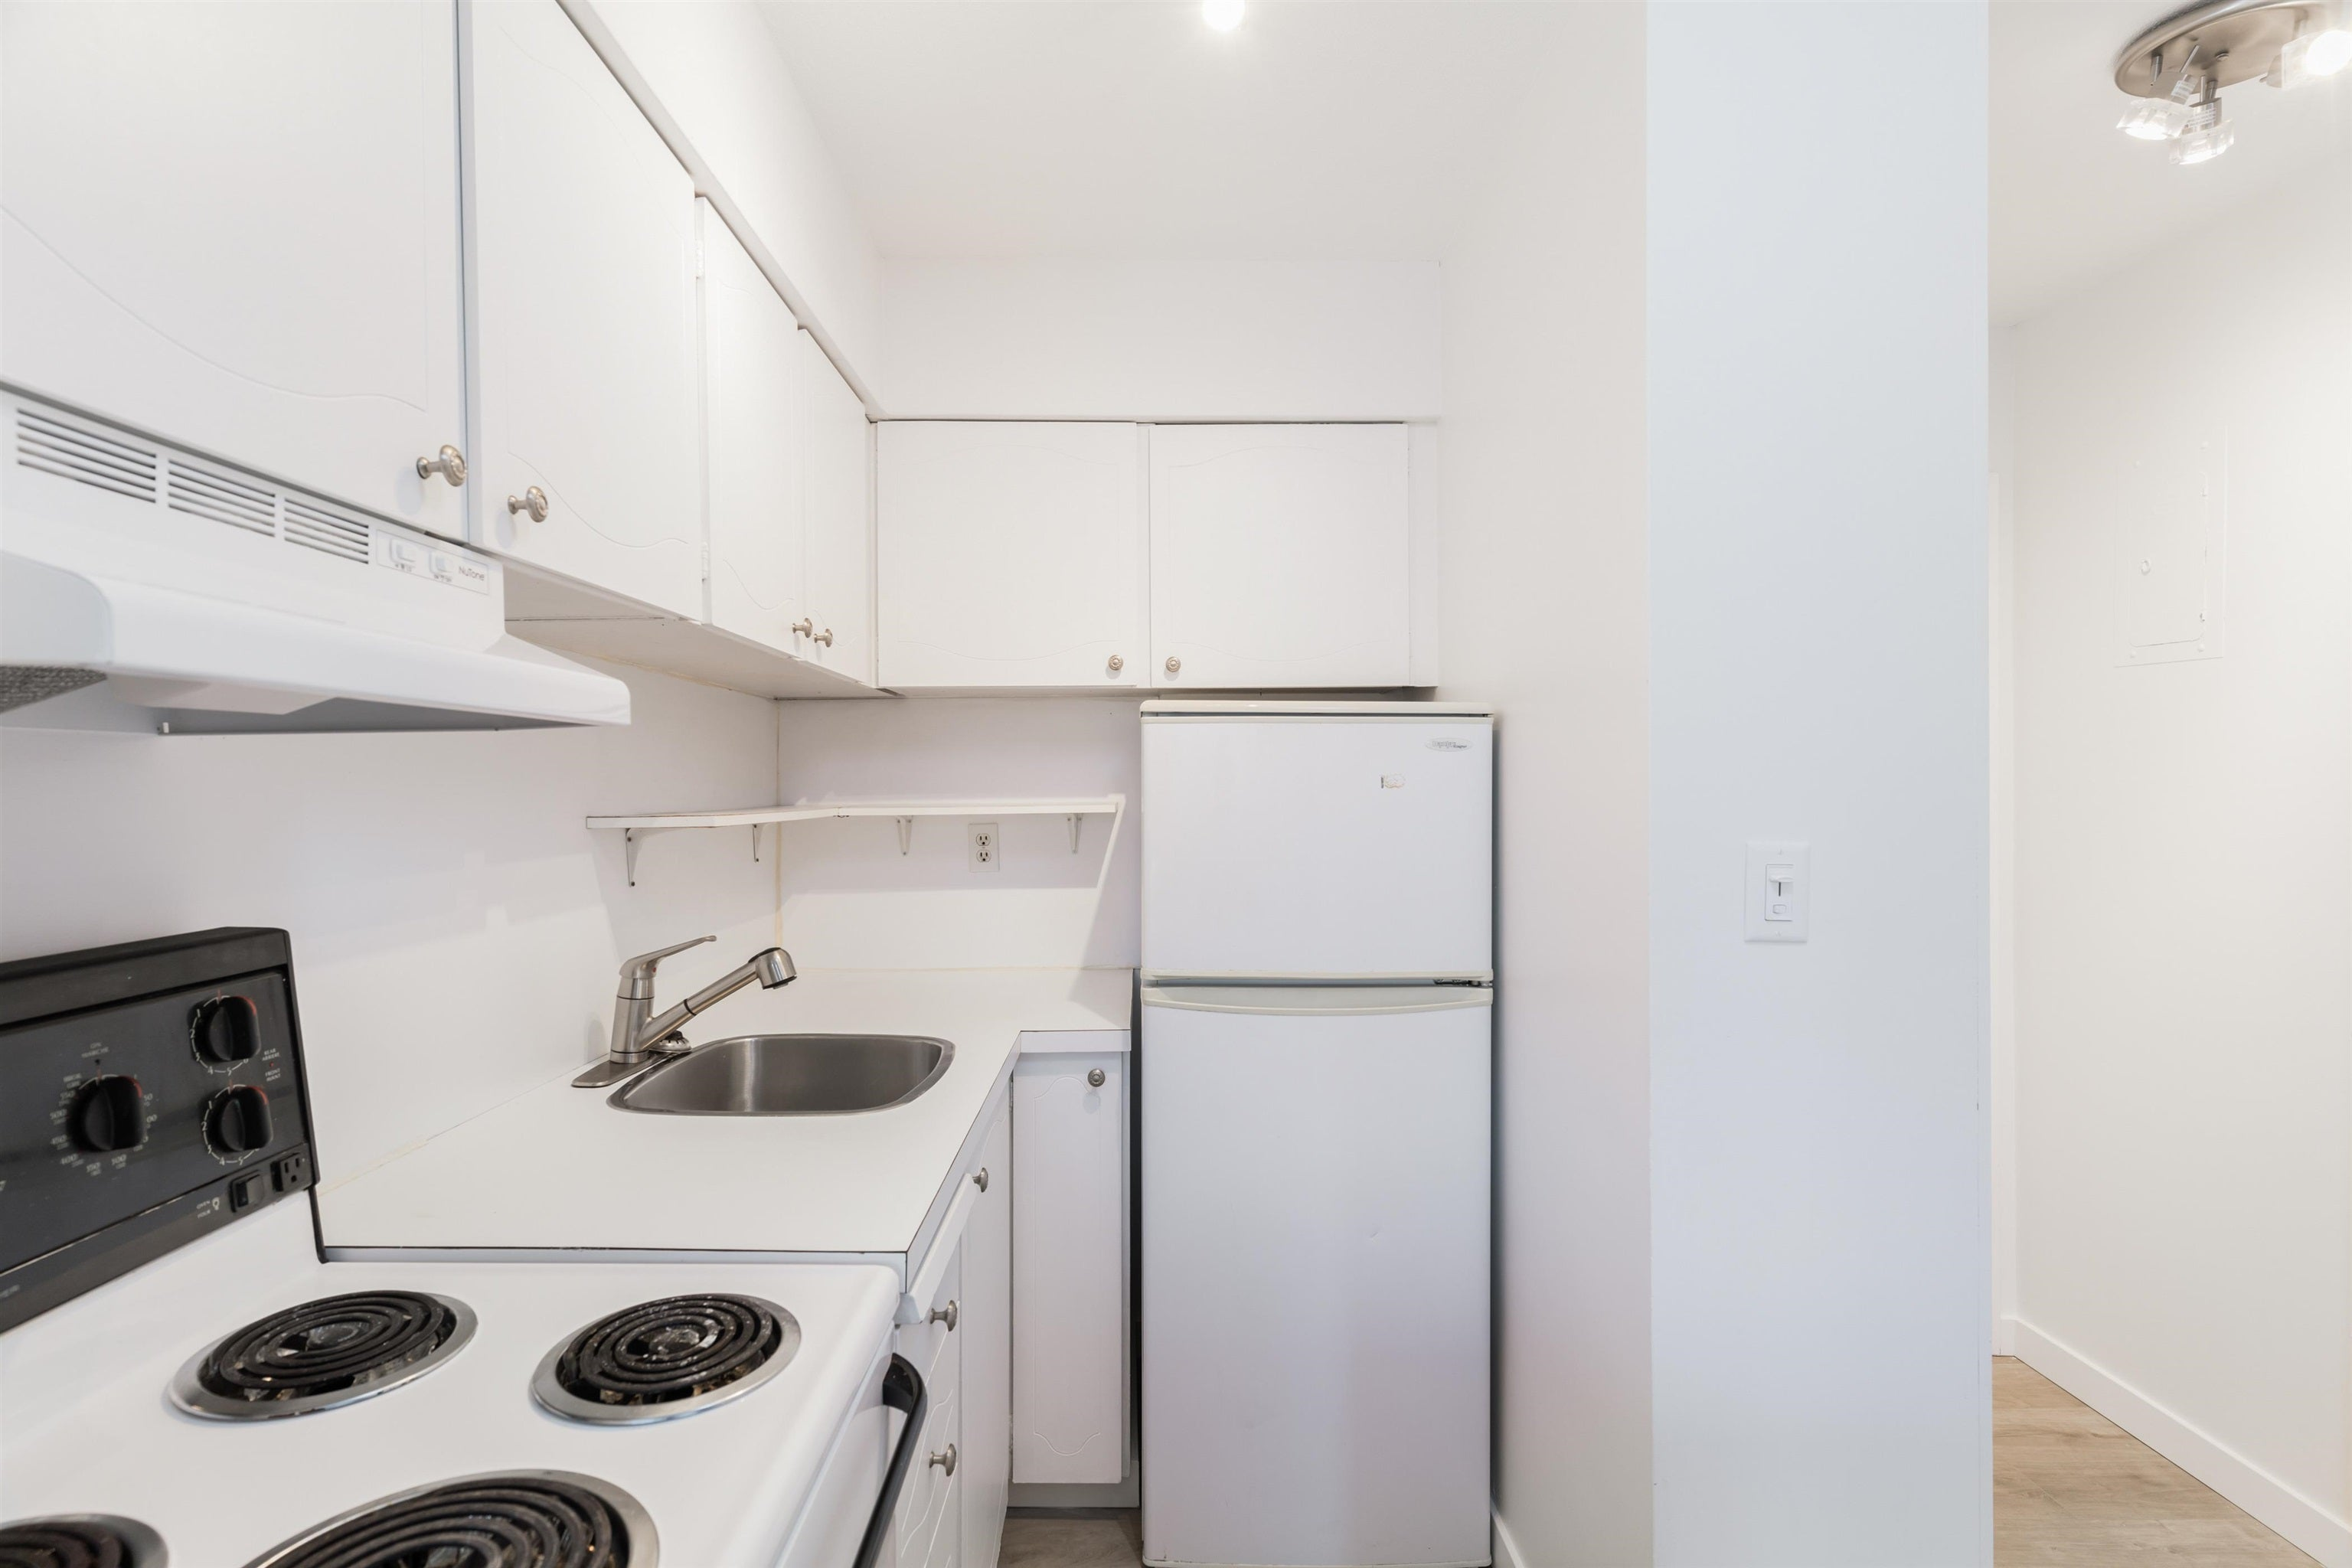 806 1251 CARDERO STREET - West End VW Apartment/Condo for sale, 1 Bedroom (R2625738) - #13